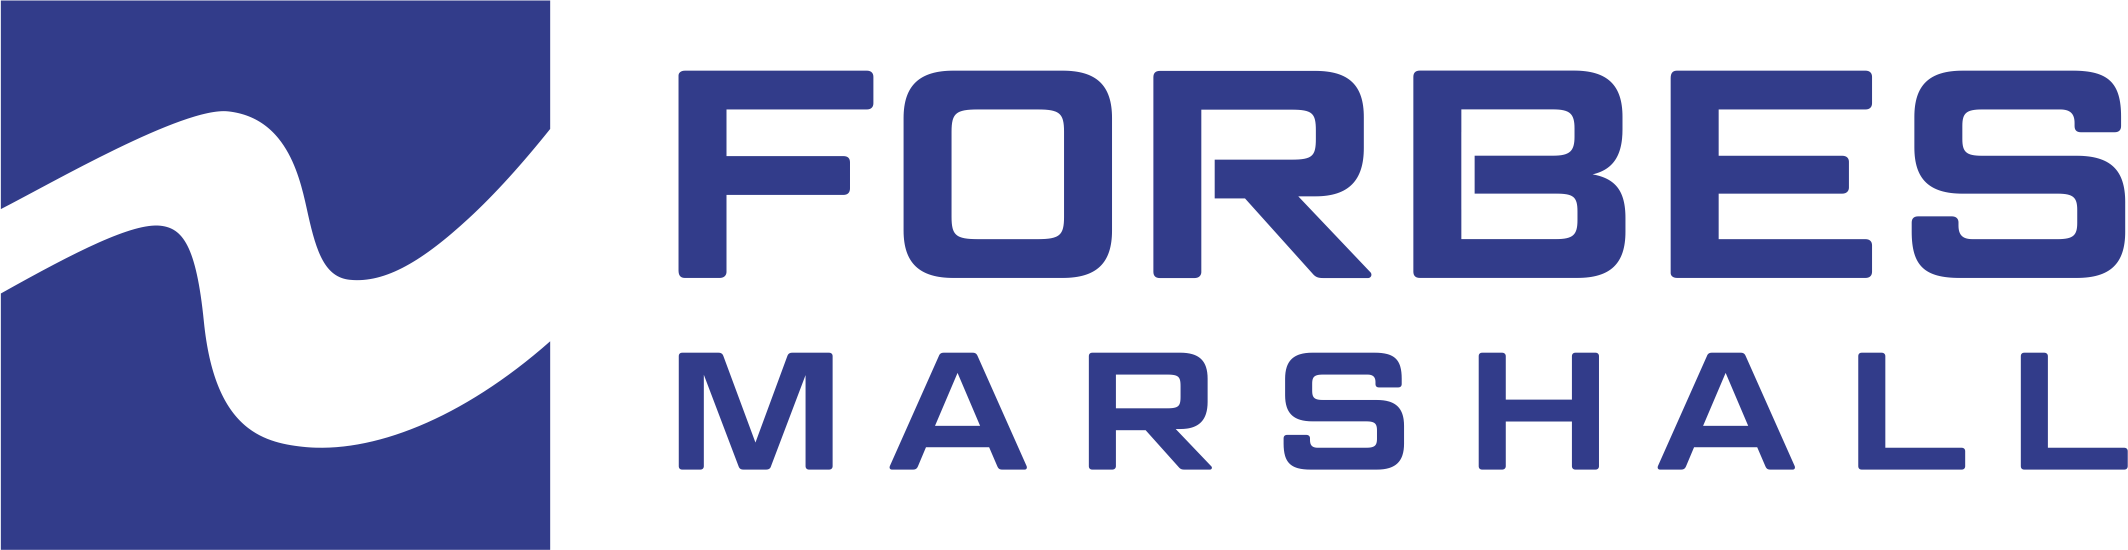 Forbes Marshall Foundation